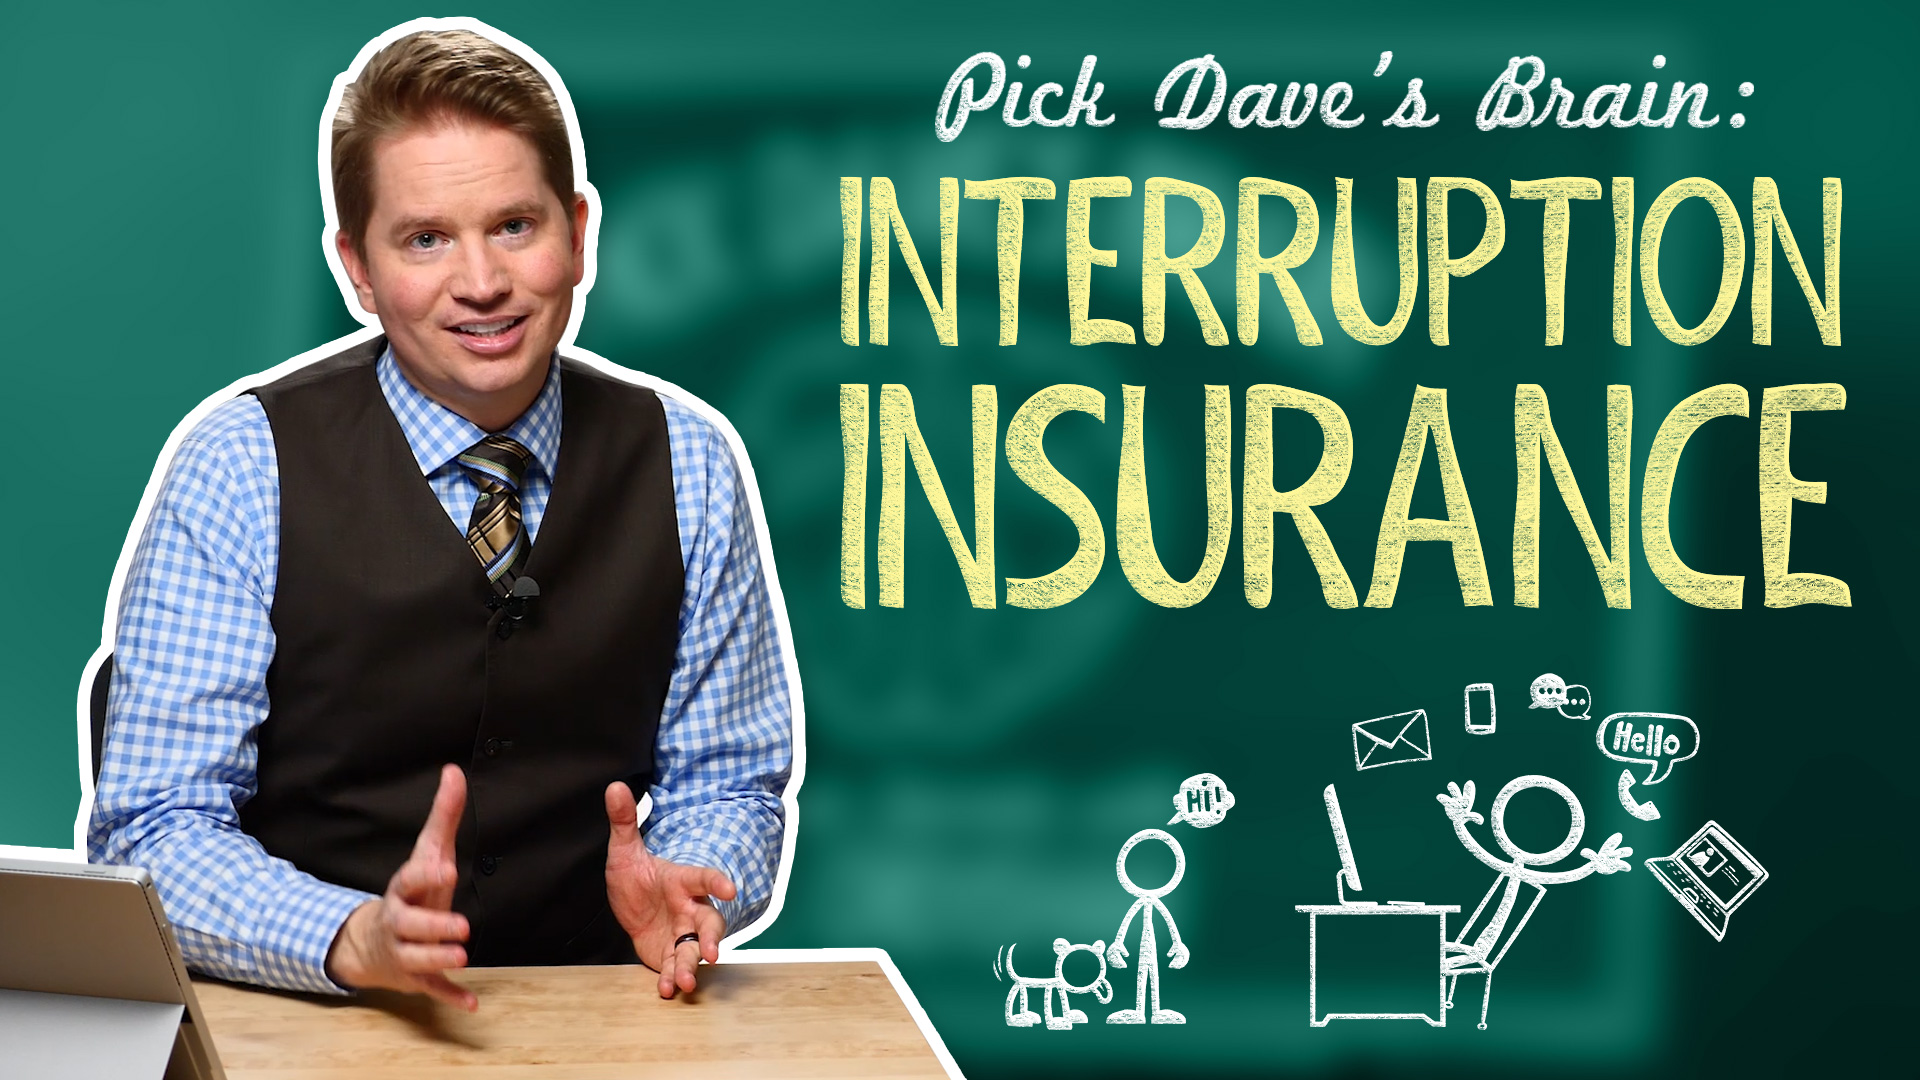 In a world of interruptions, here's how to stay ahead – Pick Dave's Brain